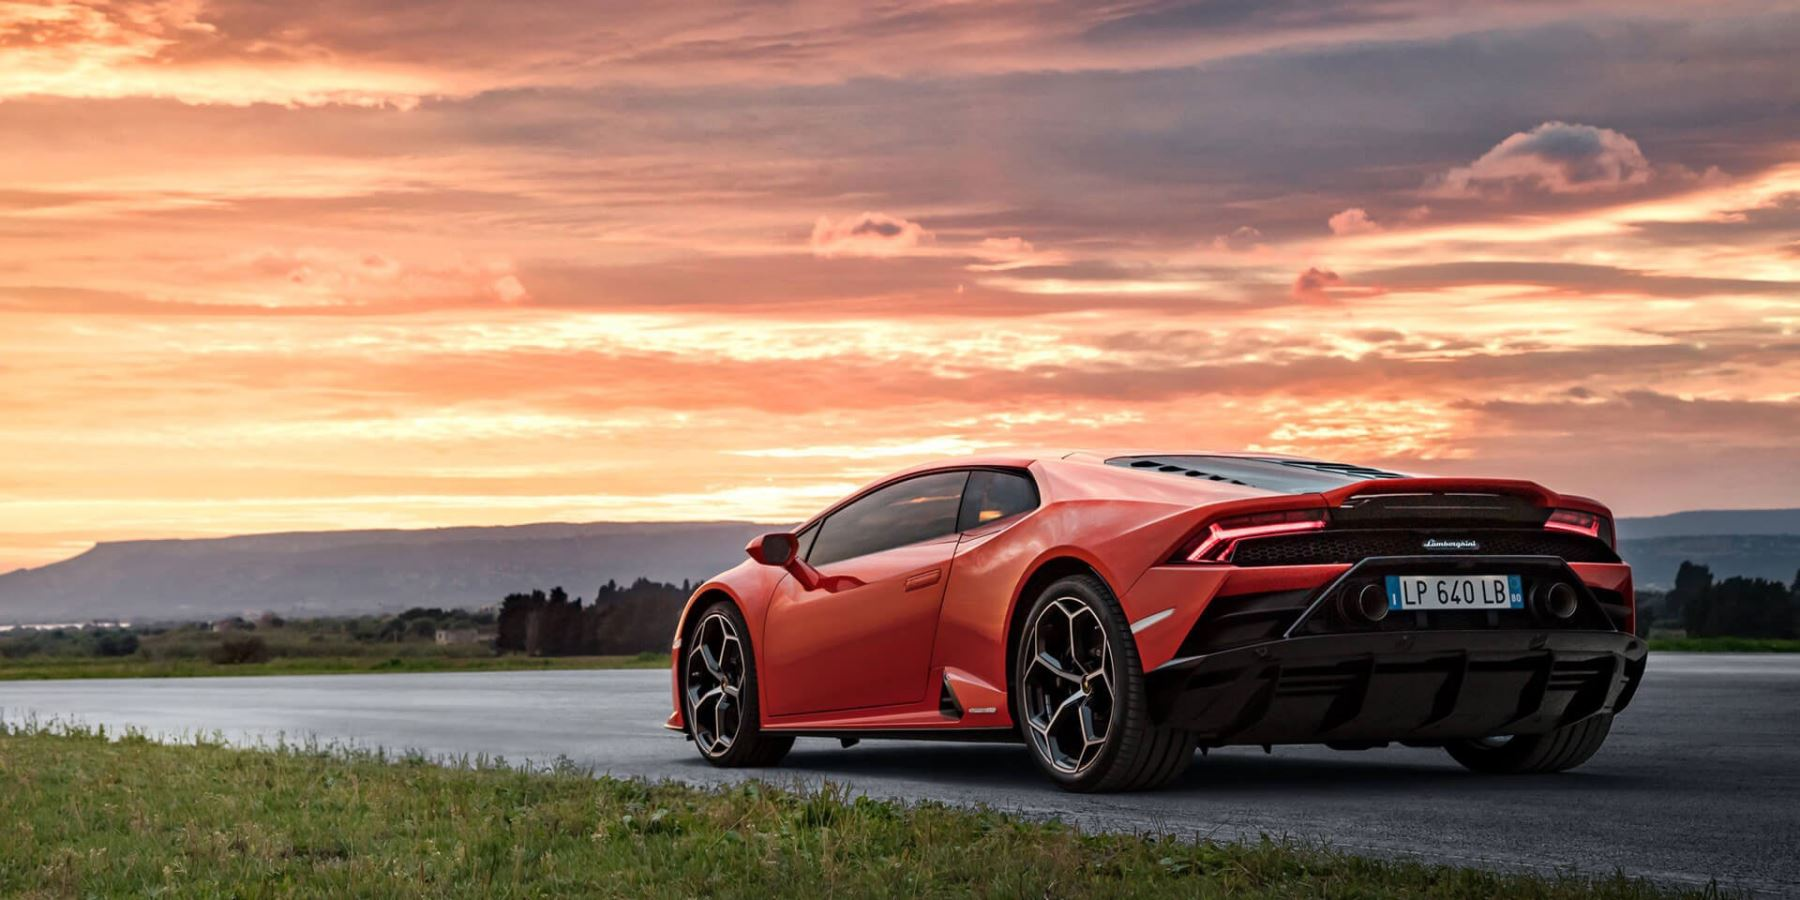 Lamborghini Huracan EVO - Every Day Amplified image 4